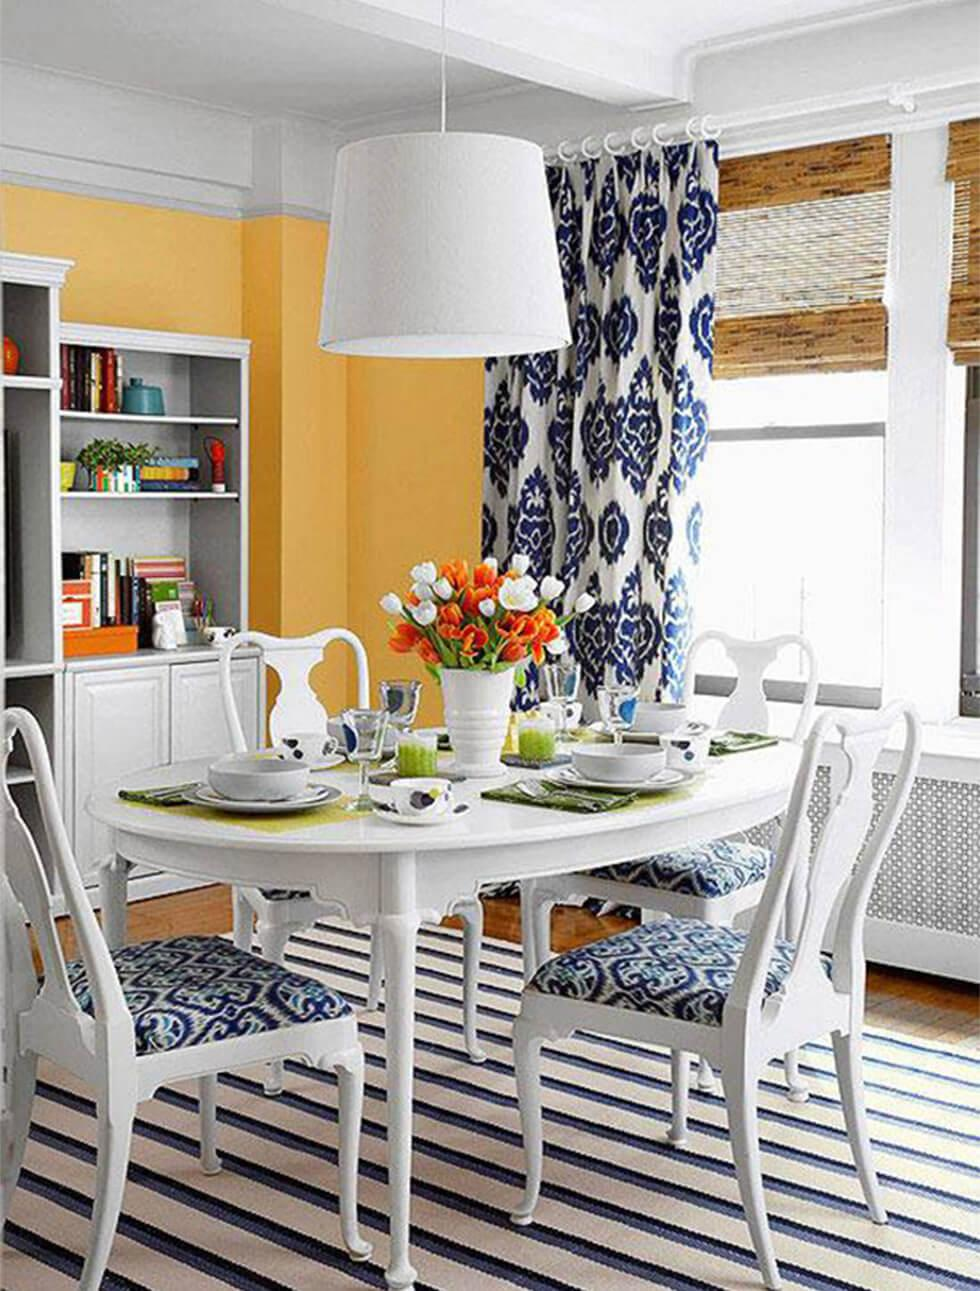 marigold orange walls in a French farmhouse dining room